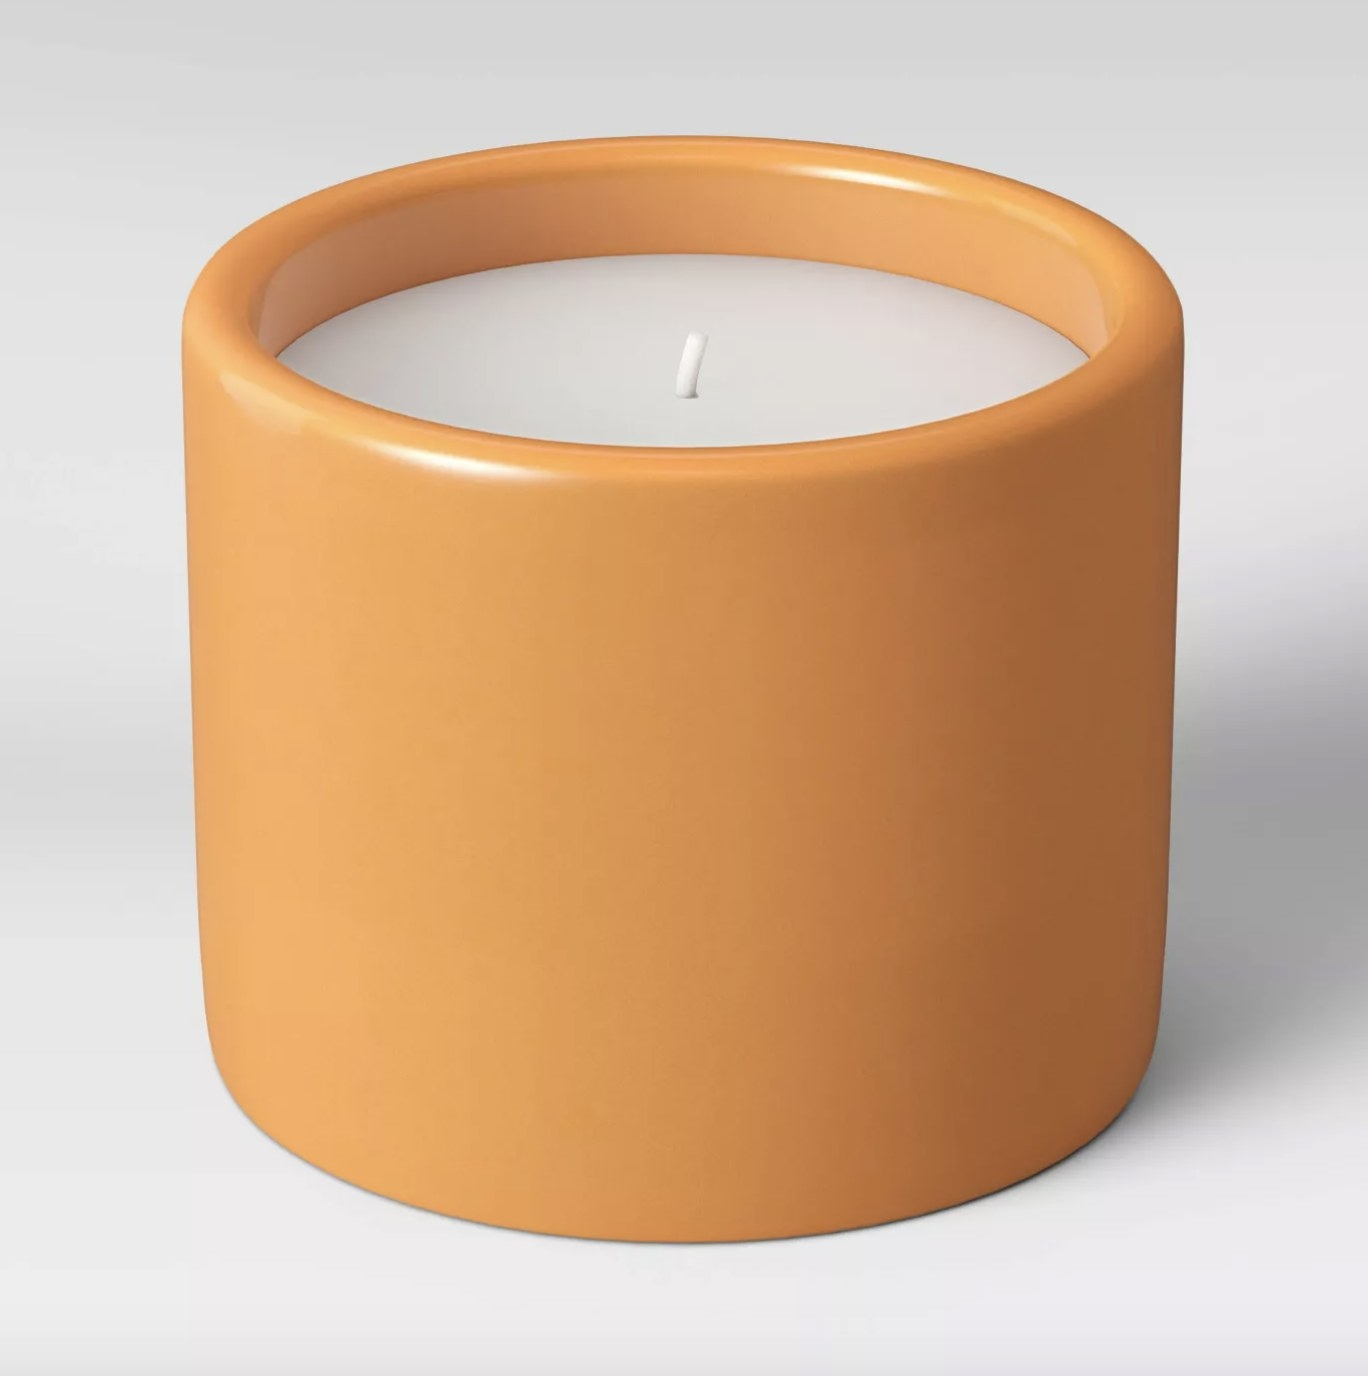 The cylindrical candle holder is in the sun orange color and has a white candle inside